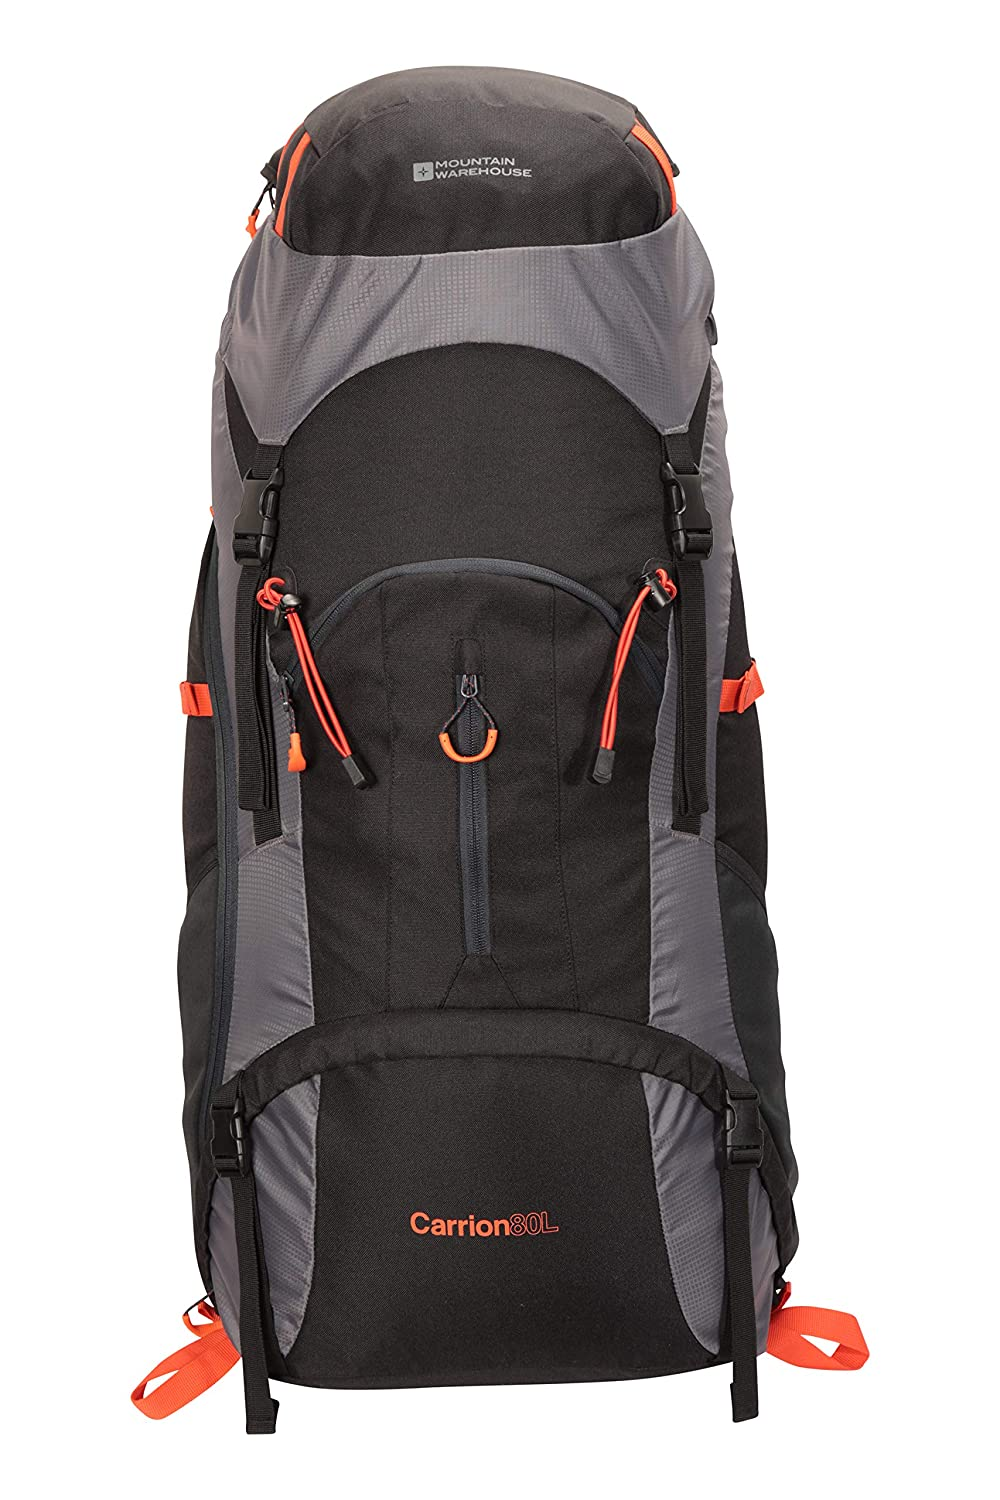 0b6cf71182 Mountain Warehouse Carrion 80L Rucksack - Soft Travel Backpack ...